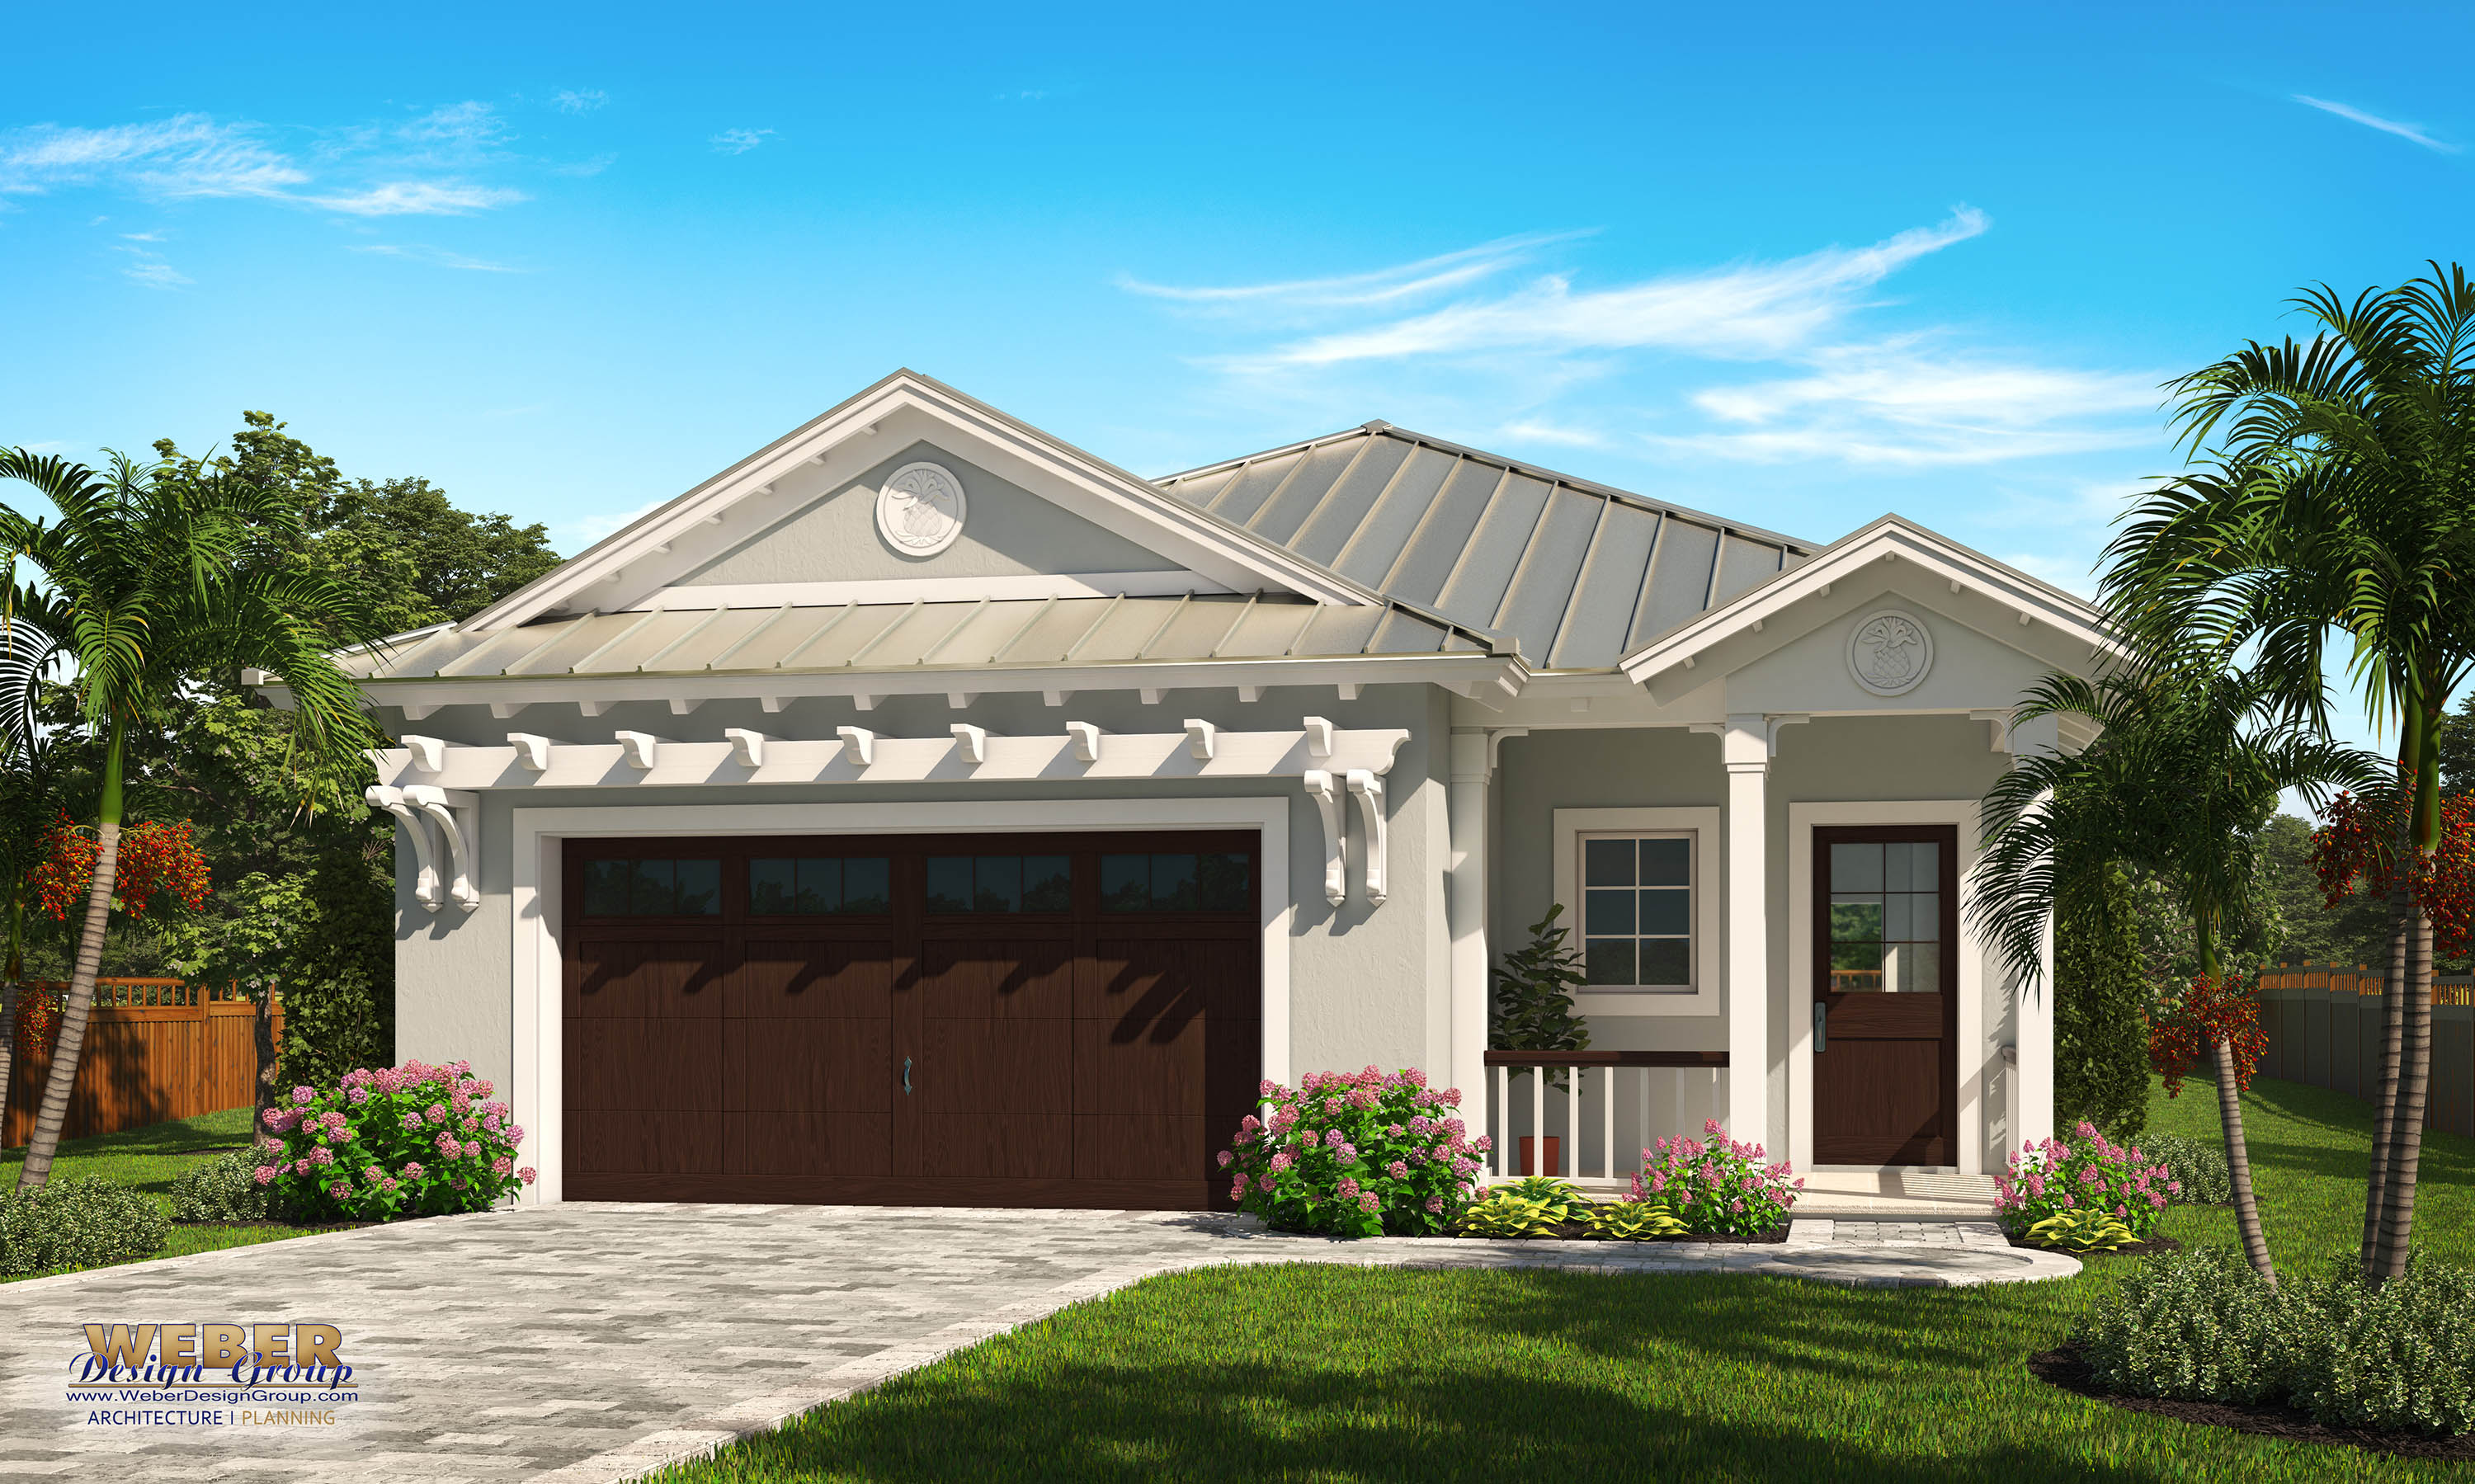 Ocean ridge house plan west indies style narrow lot for Transitional house plans